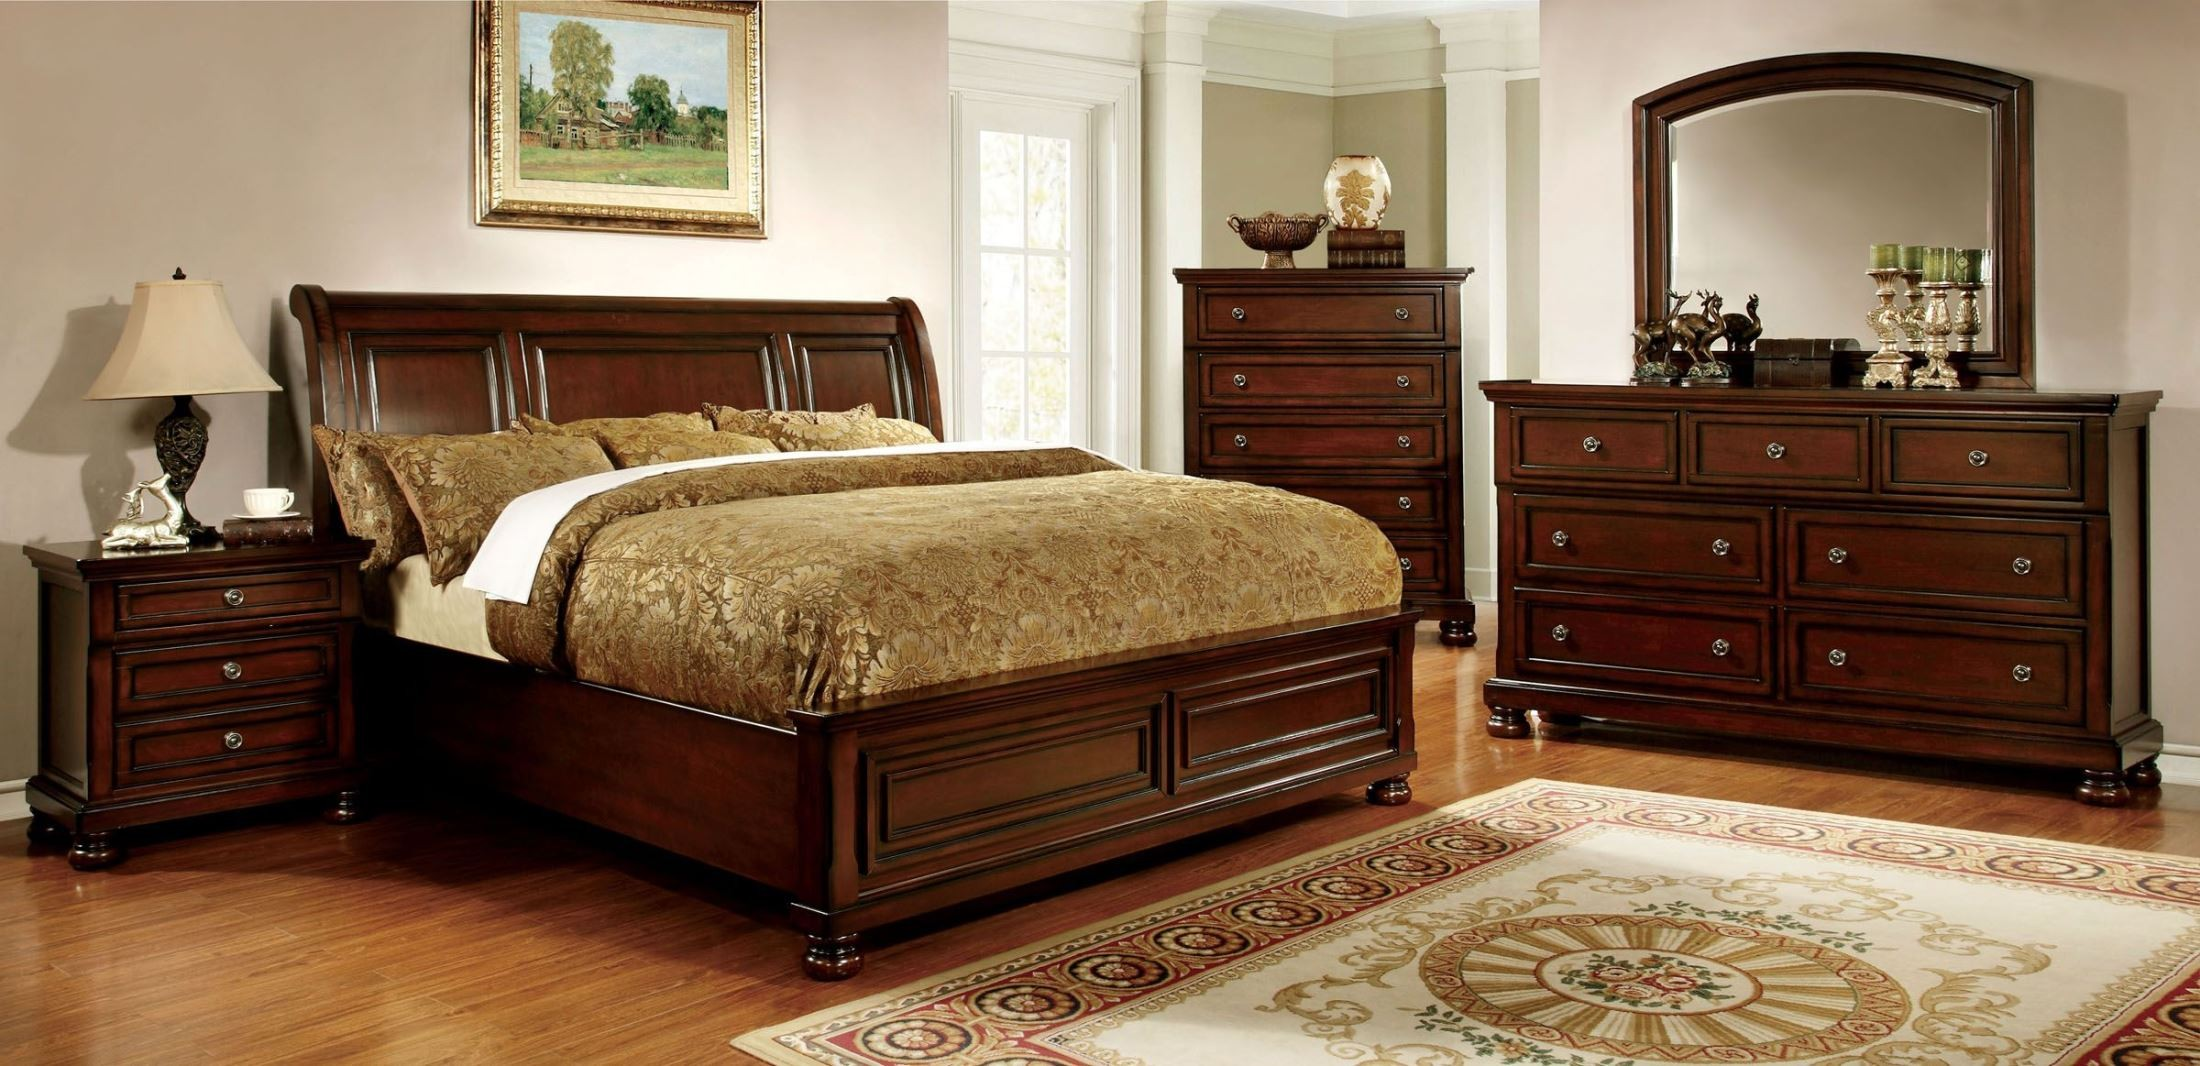 northville dark cherry bedroom set from furniture of dark cherry wood bedroom furniture